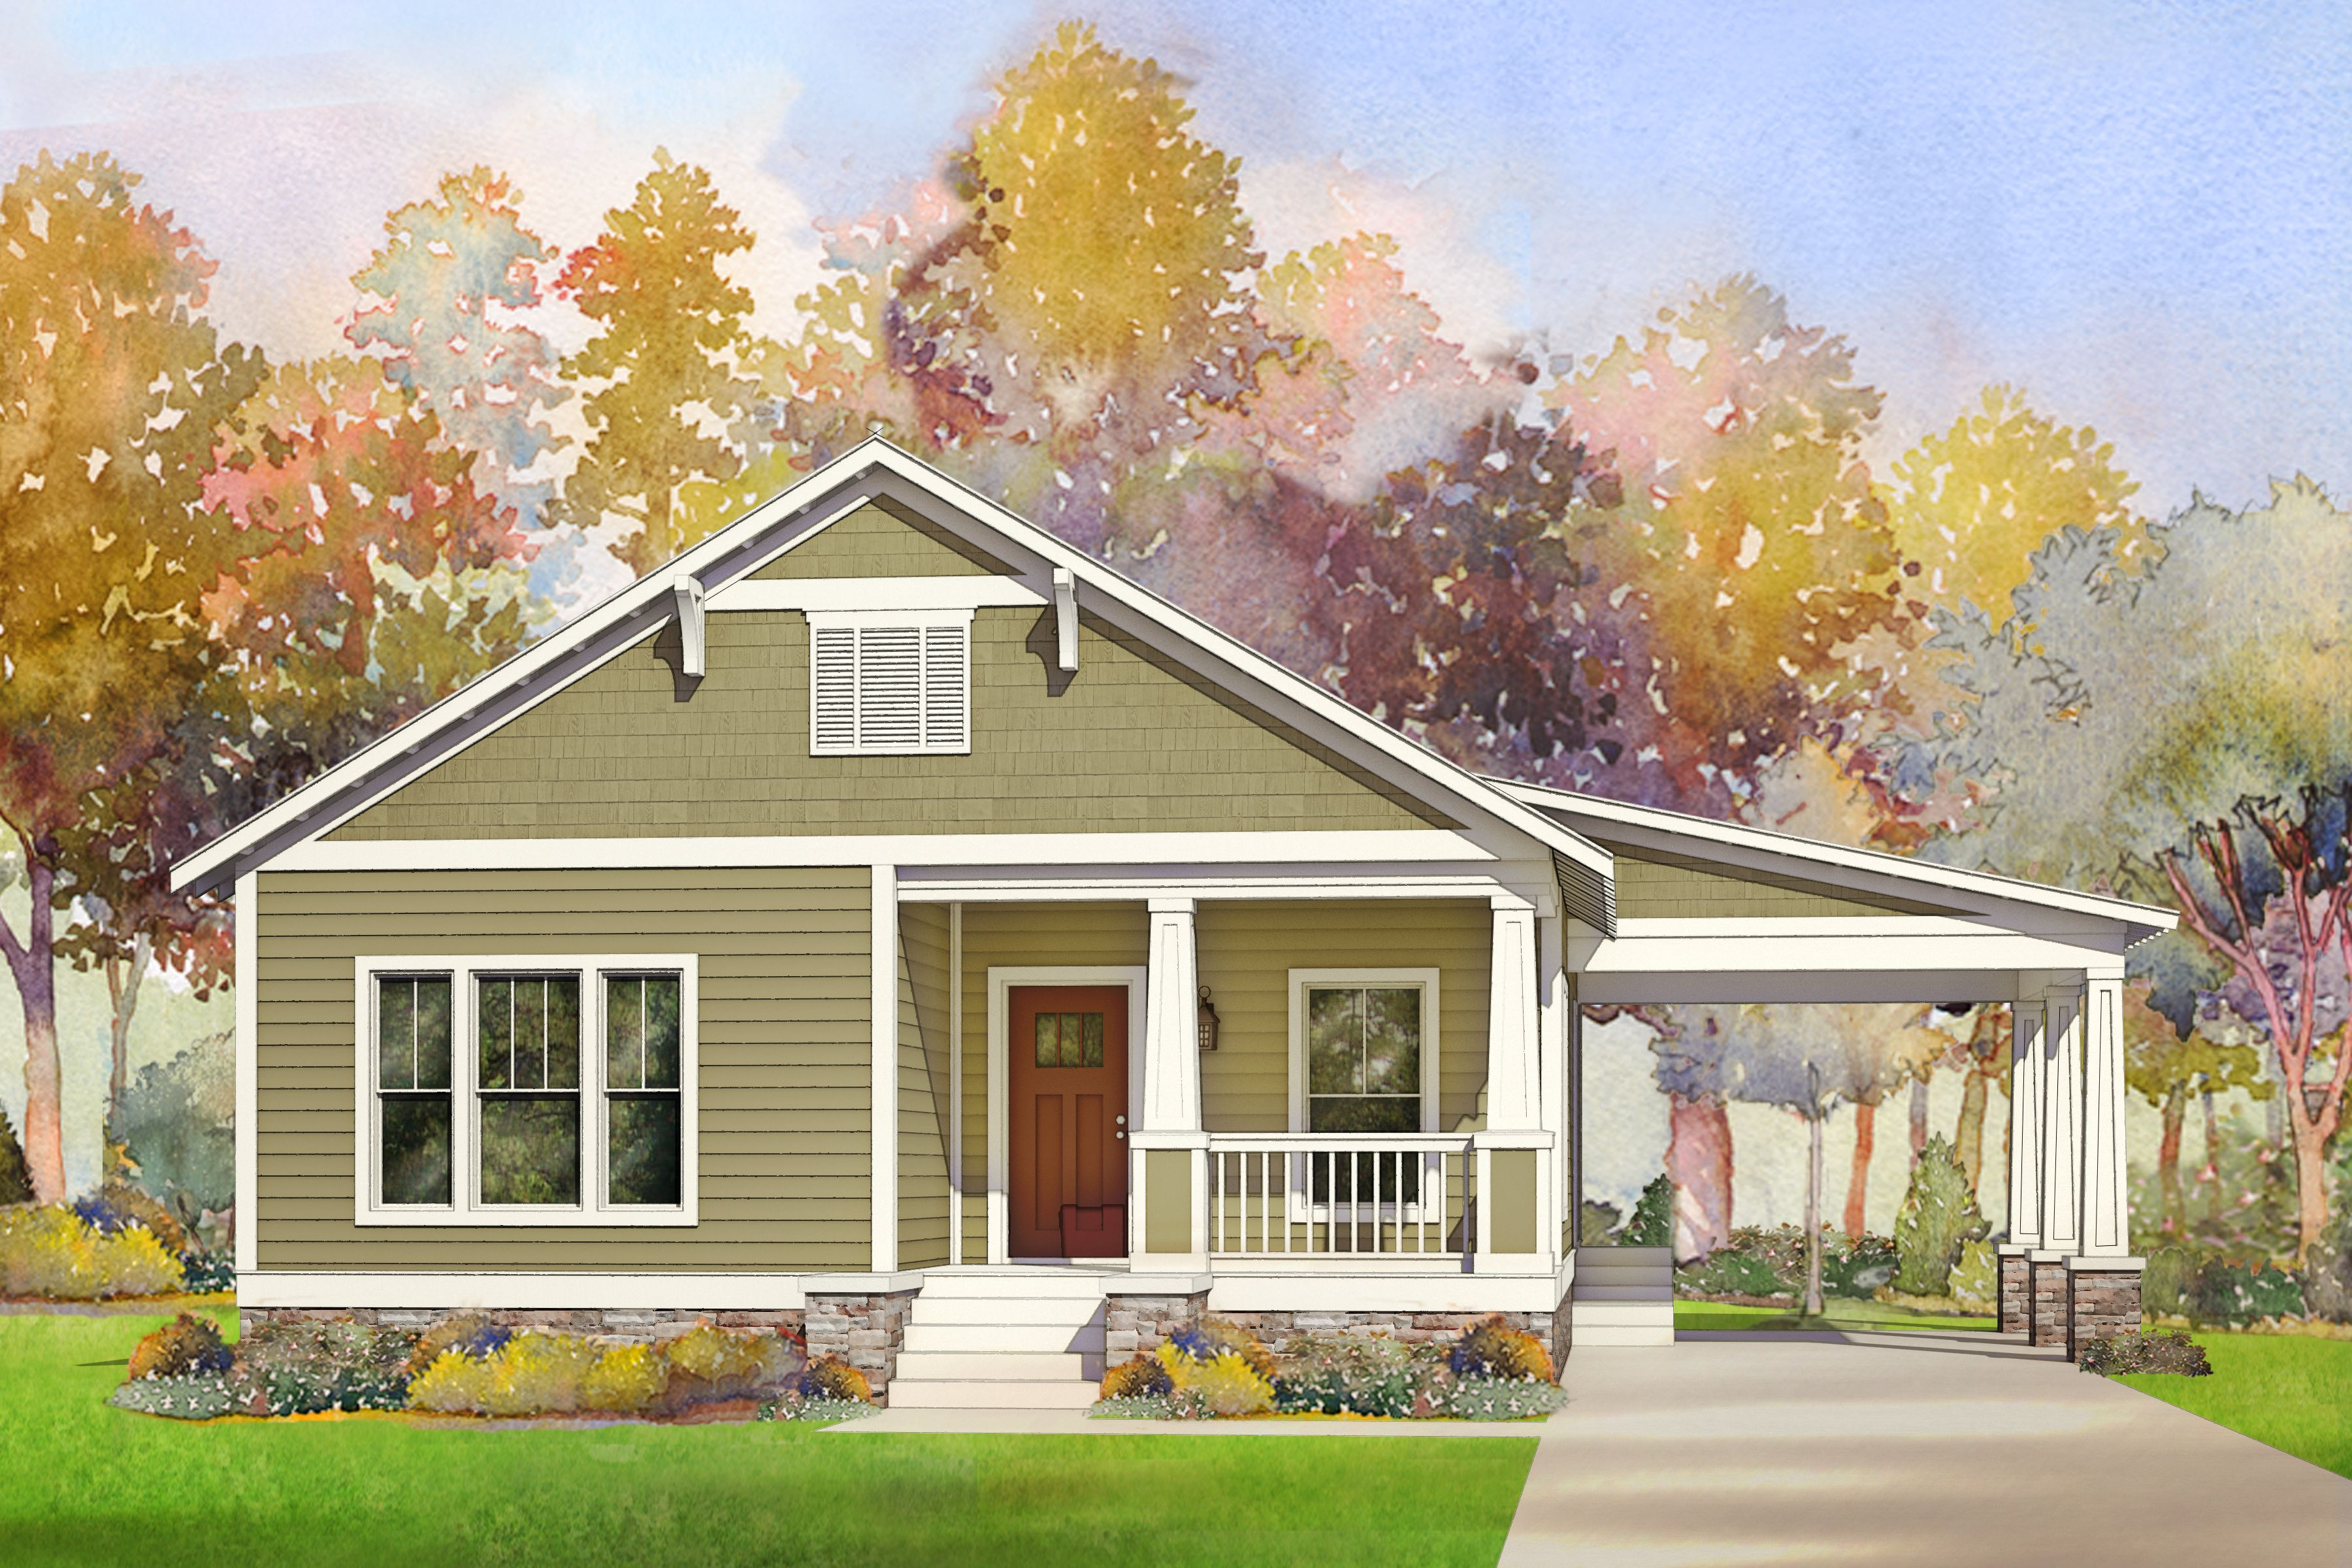 The Wickliffe Rendering By Affinity Building Systems In Lakeland Ga